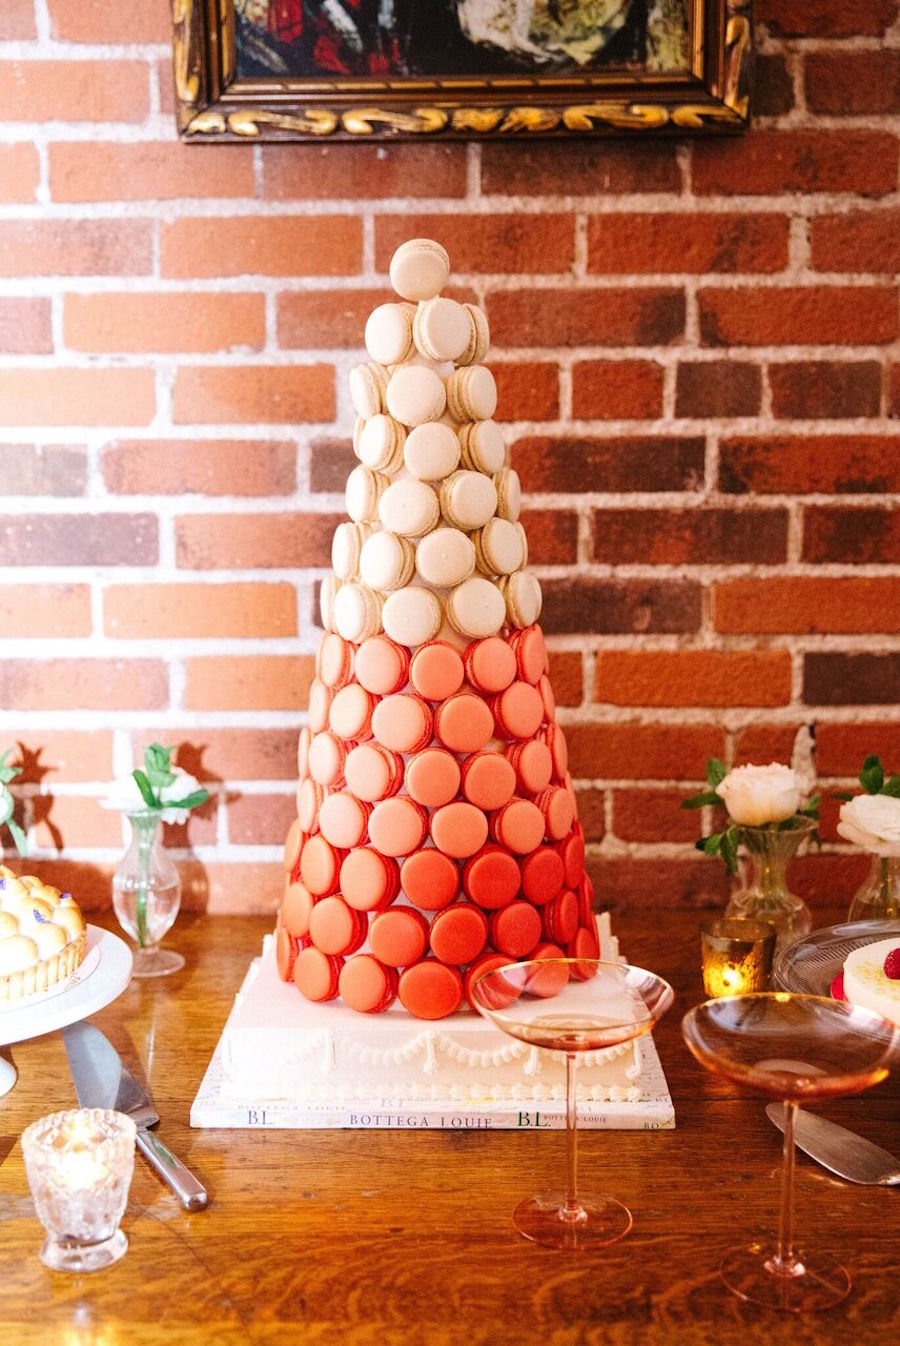 Instead of a wedding cake the guys took an ombre macaron tower to add even more French chic